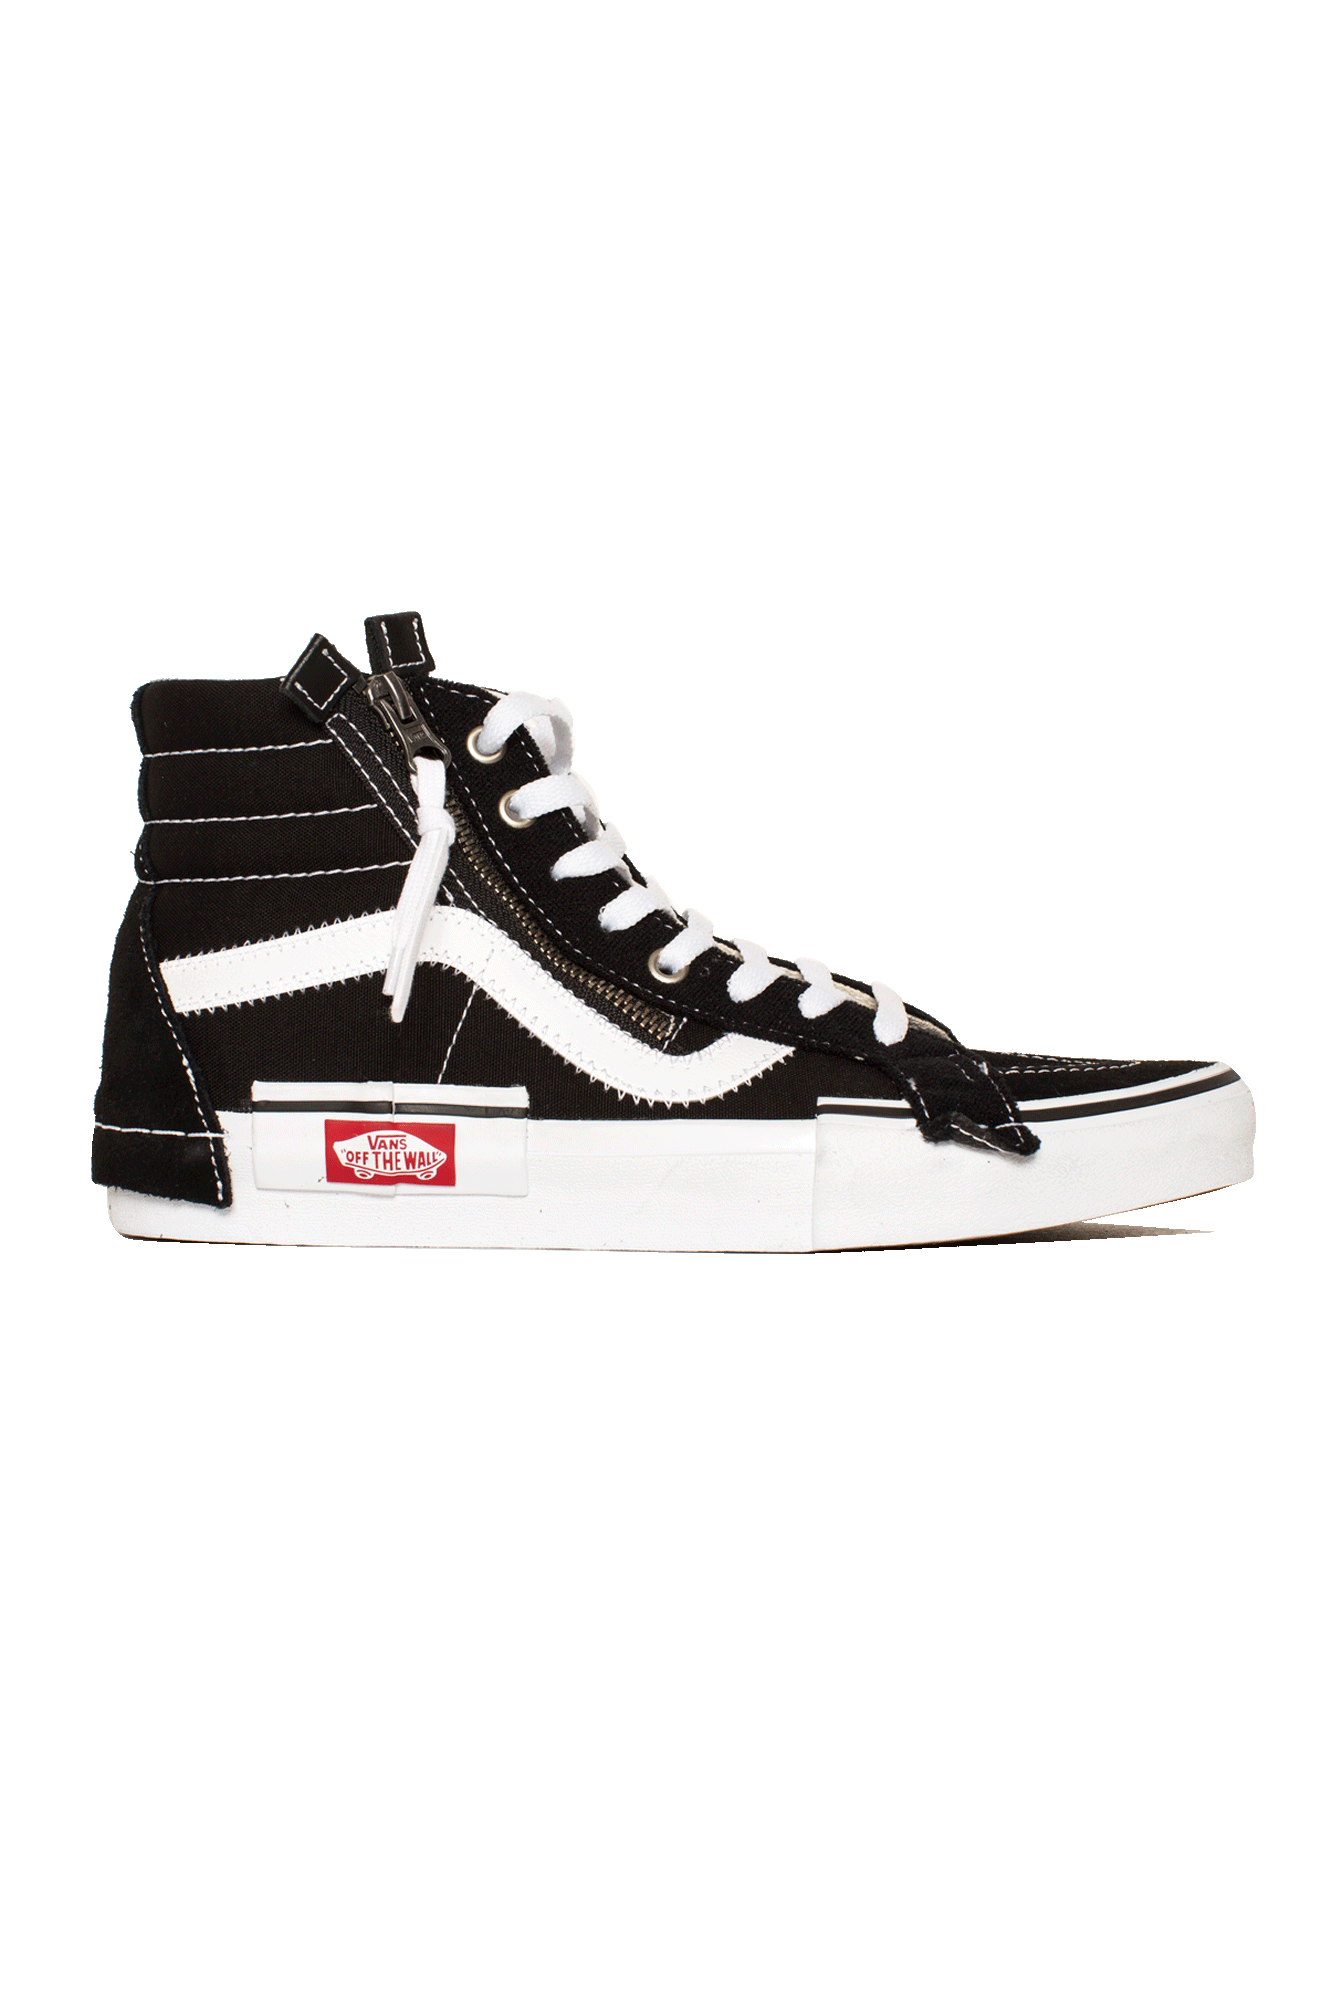 Vans Sneakers SK8-Hi Reissue CAP Nero VN0A3WM1#000#6BT1#7 - One Block Down